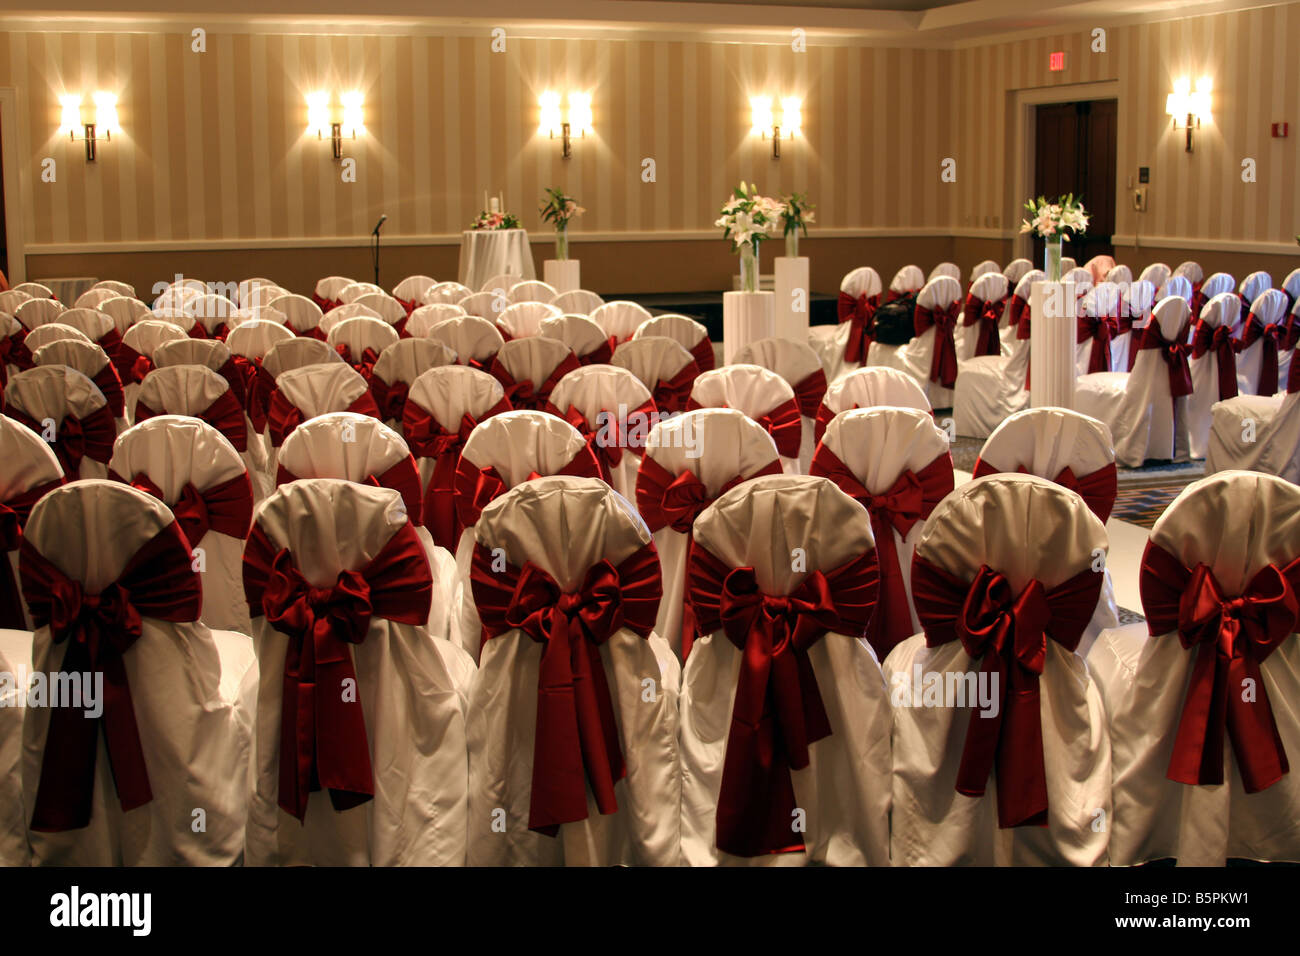 The chairs with red bows set up for a wedding ceremony - Stock Image